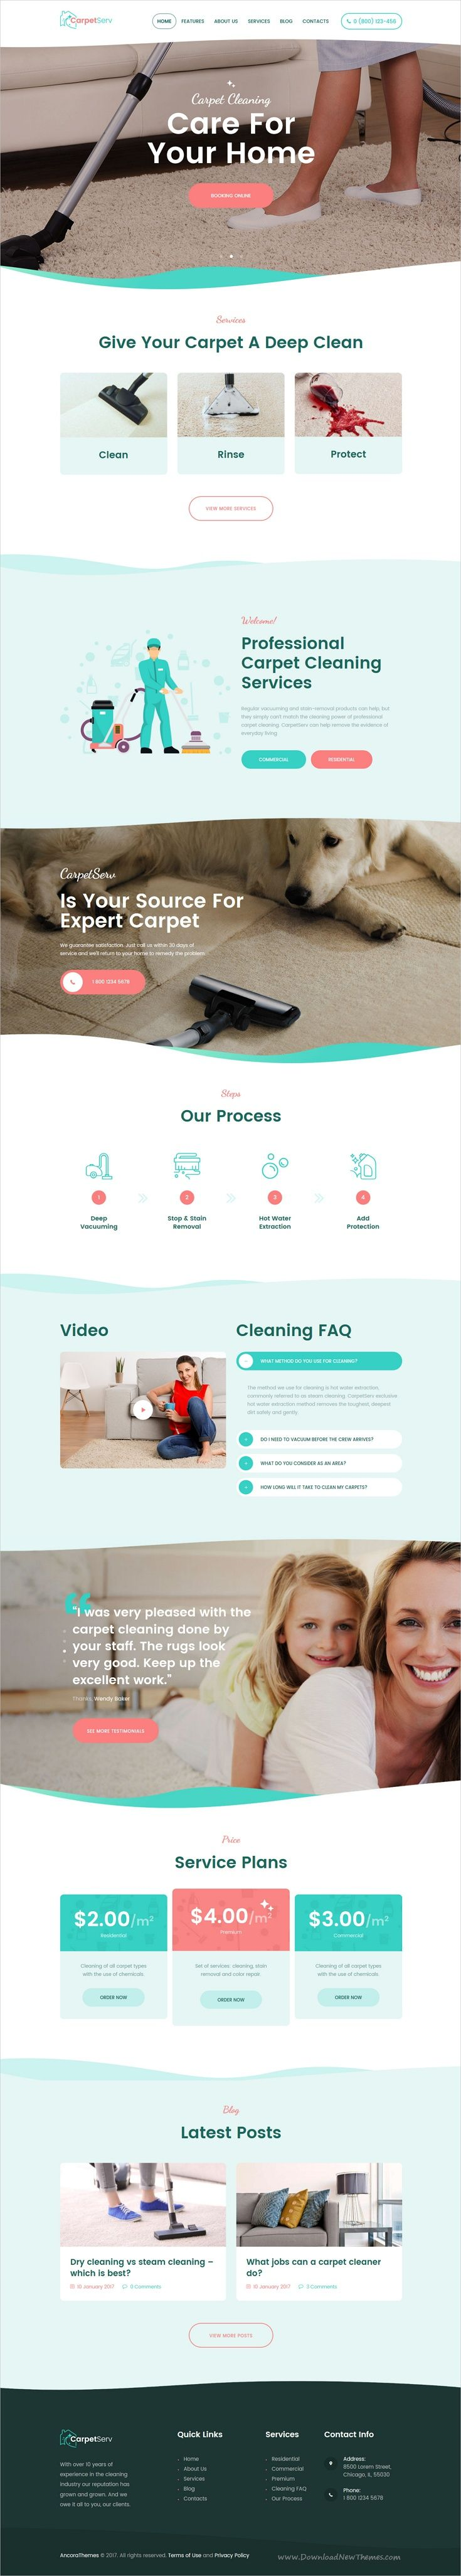 CarpetServ is clean and modern design responsive #WordPress theme for #cleaning service, maid service, #janitorial and maintenance service companies websites download now > https://themeforest.net/item/carpetserv-cleaning-company-janitorial-service/19985232?ref=Datasata